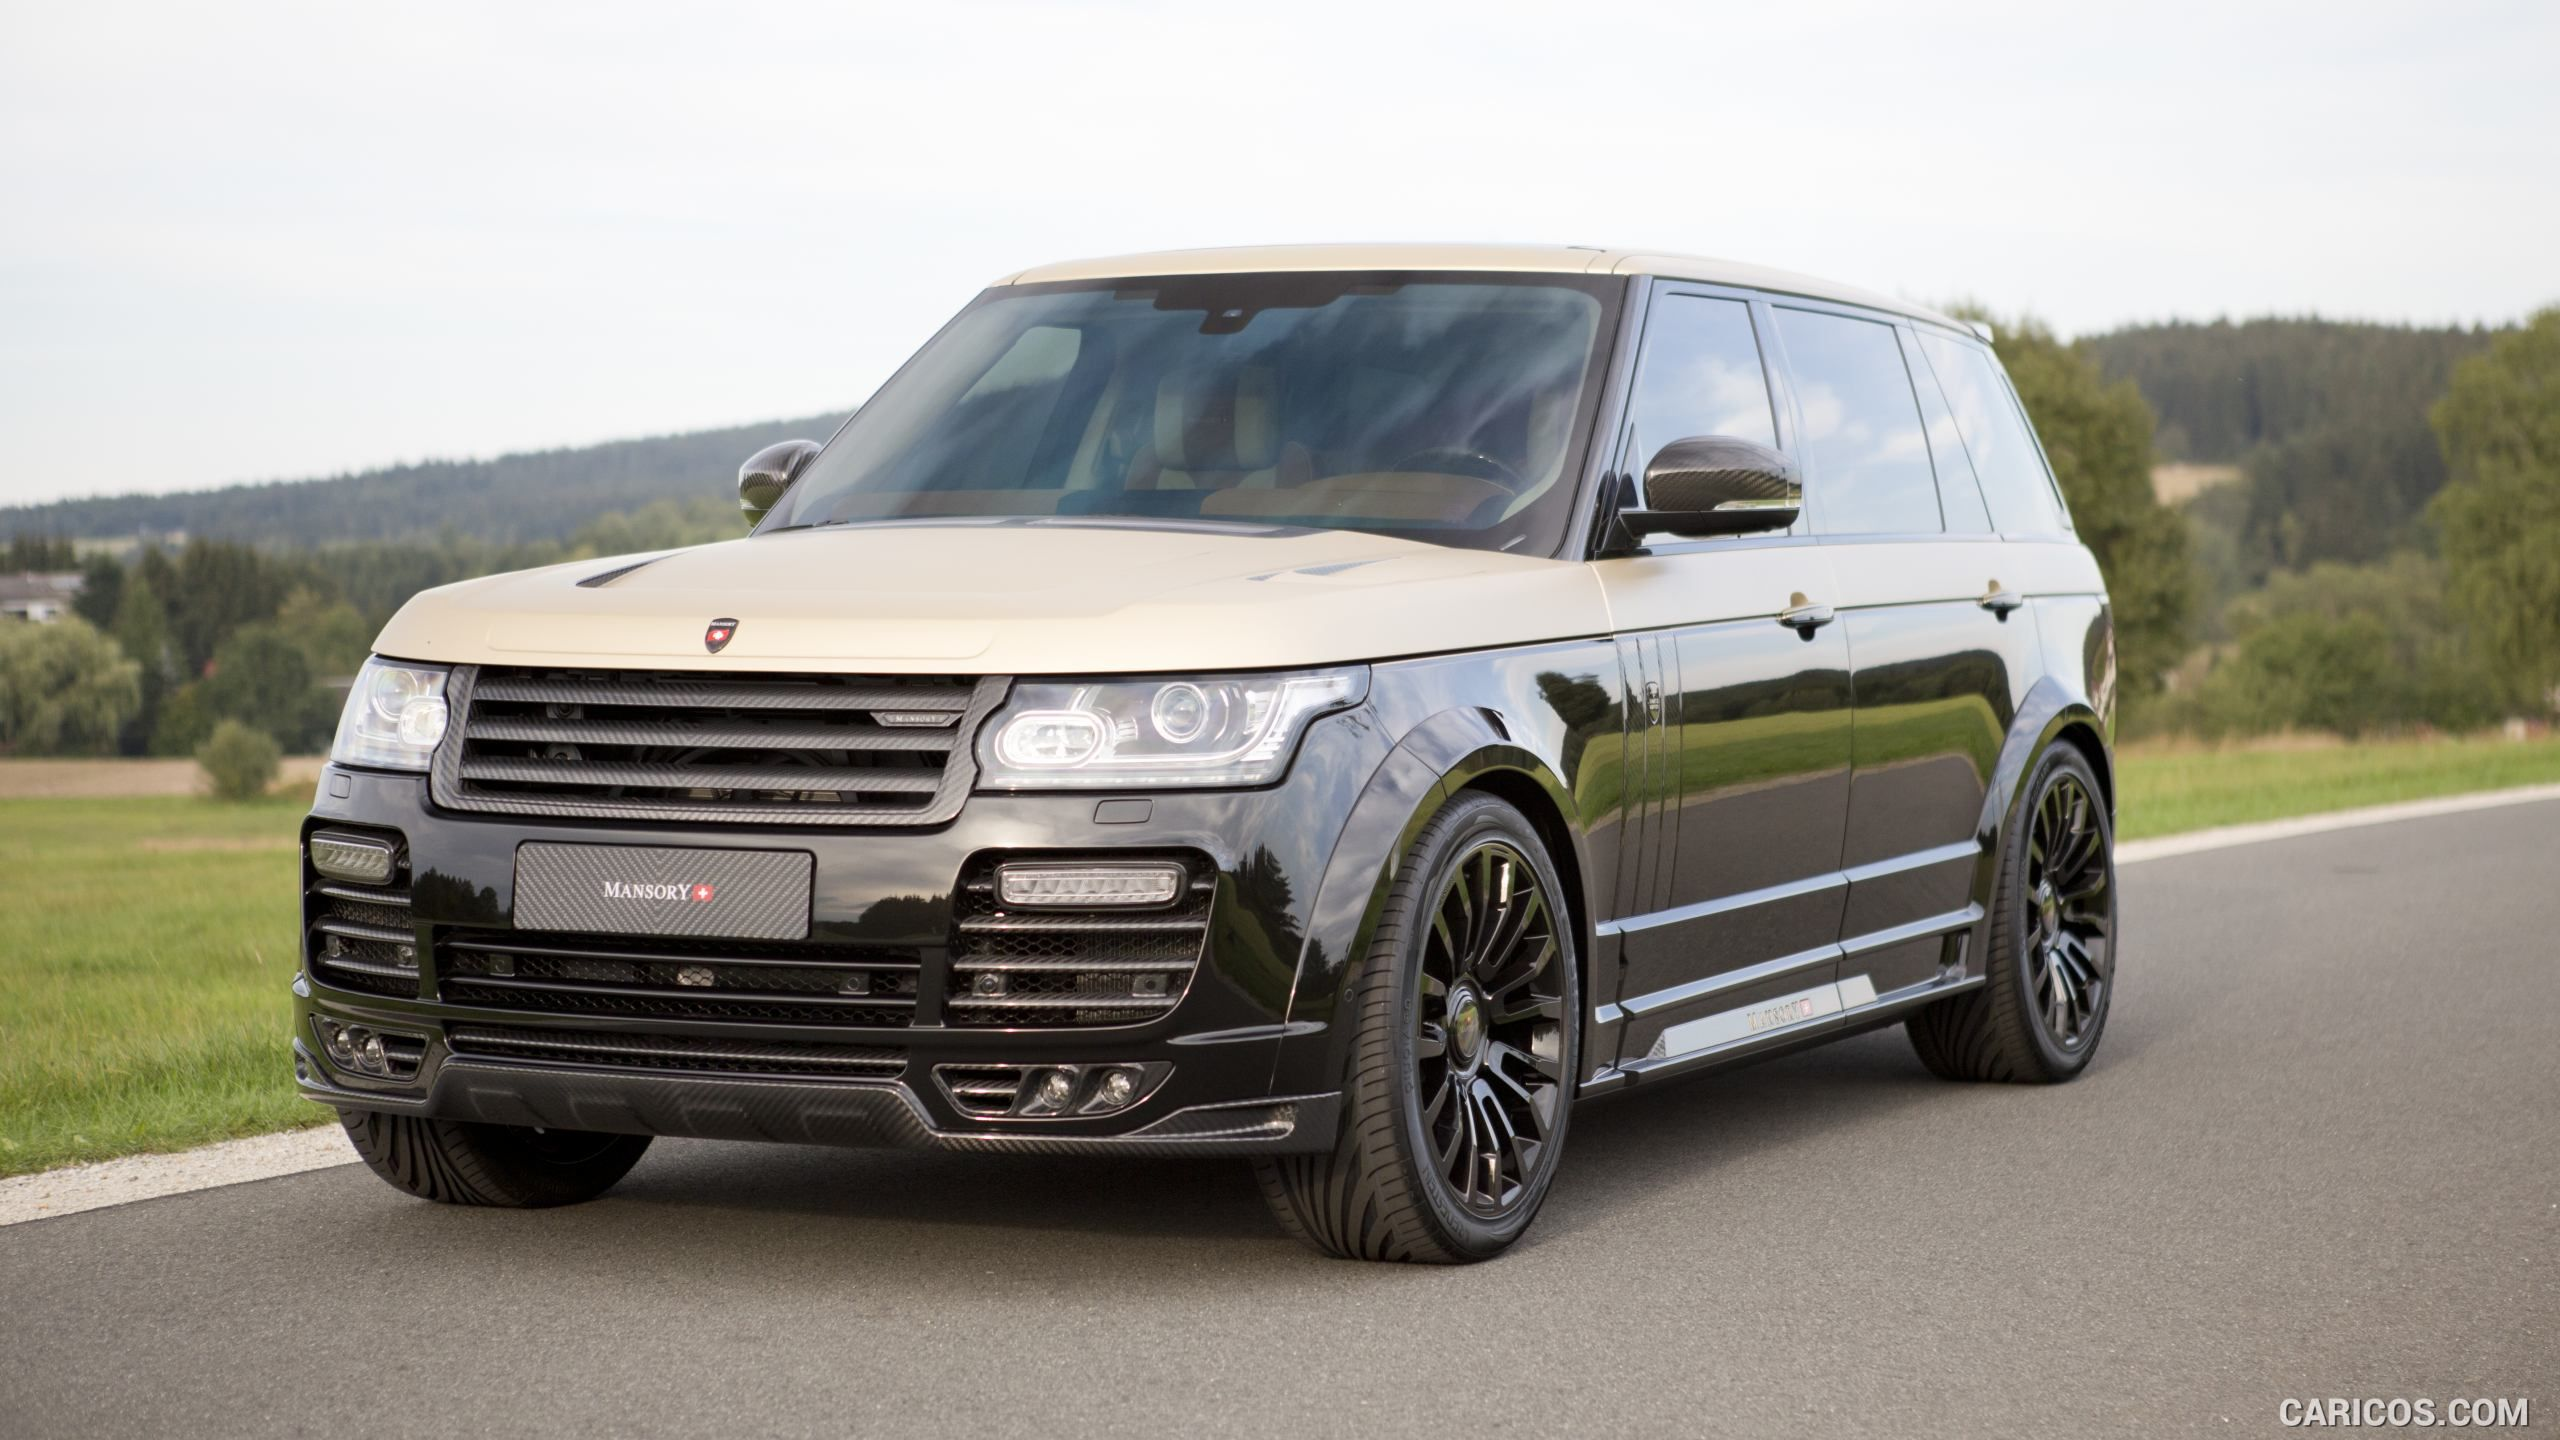 caricos mansory range rover autobiography extended 2016 link 12 fotos  [ 2560 x 1440 Pixel ]